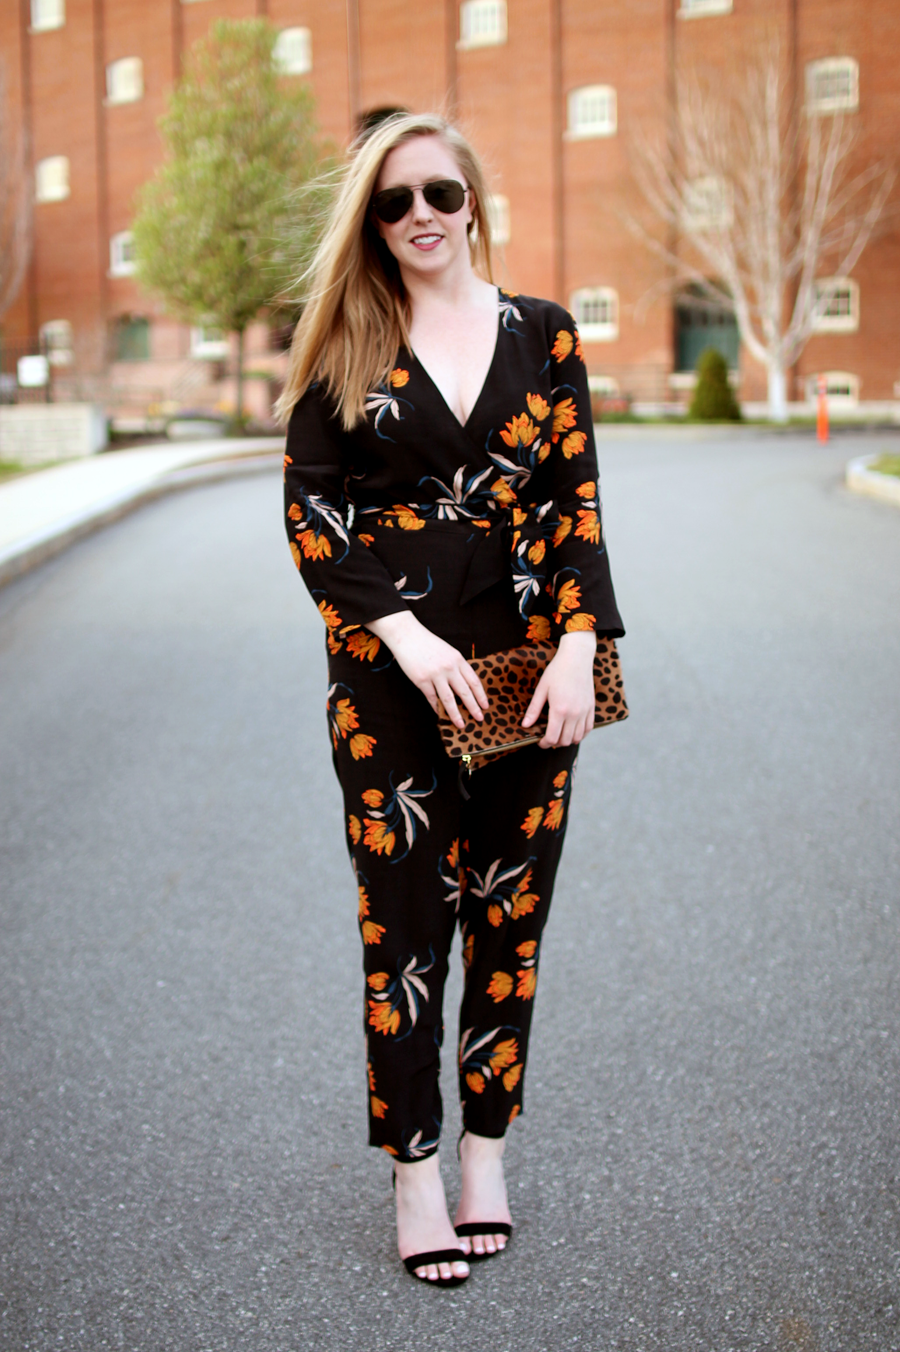 jumpsuit wedding wear, how to wear a jumpsuit, jumpsuit to a wedding, what i wore, boston style blogger, clare v folderover clutch, boston blogger spring, my style diary, topshop printed jumpsuit